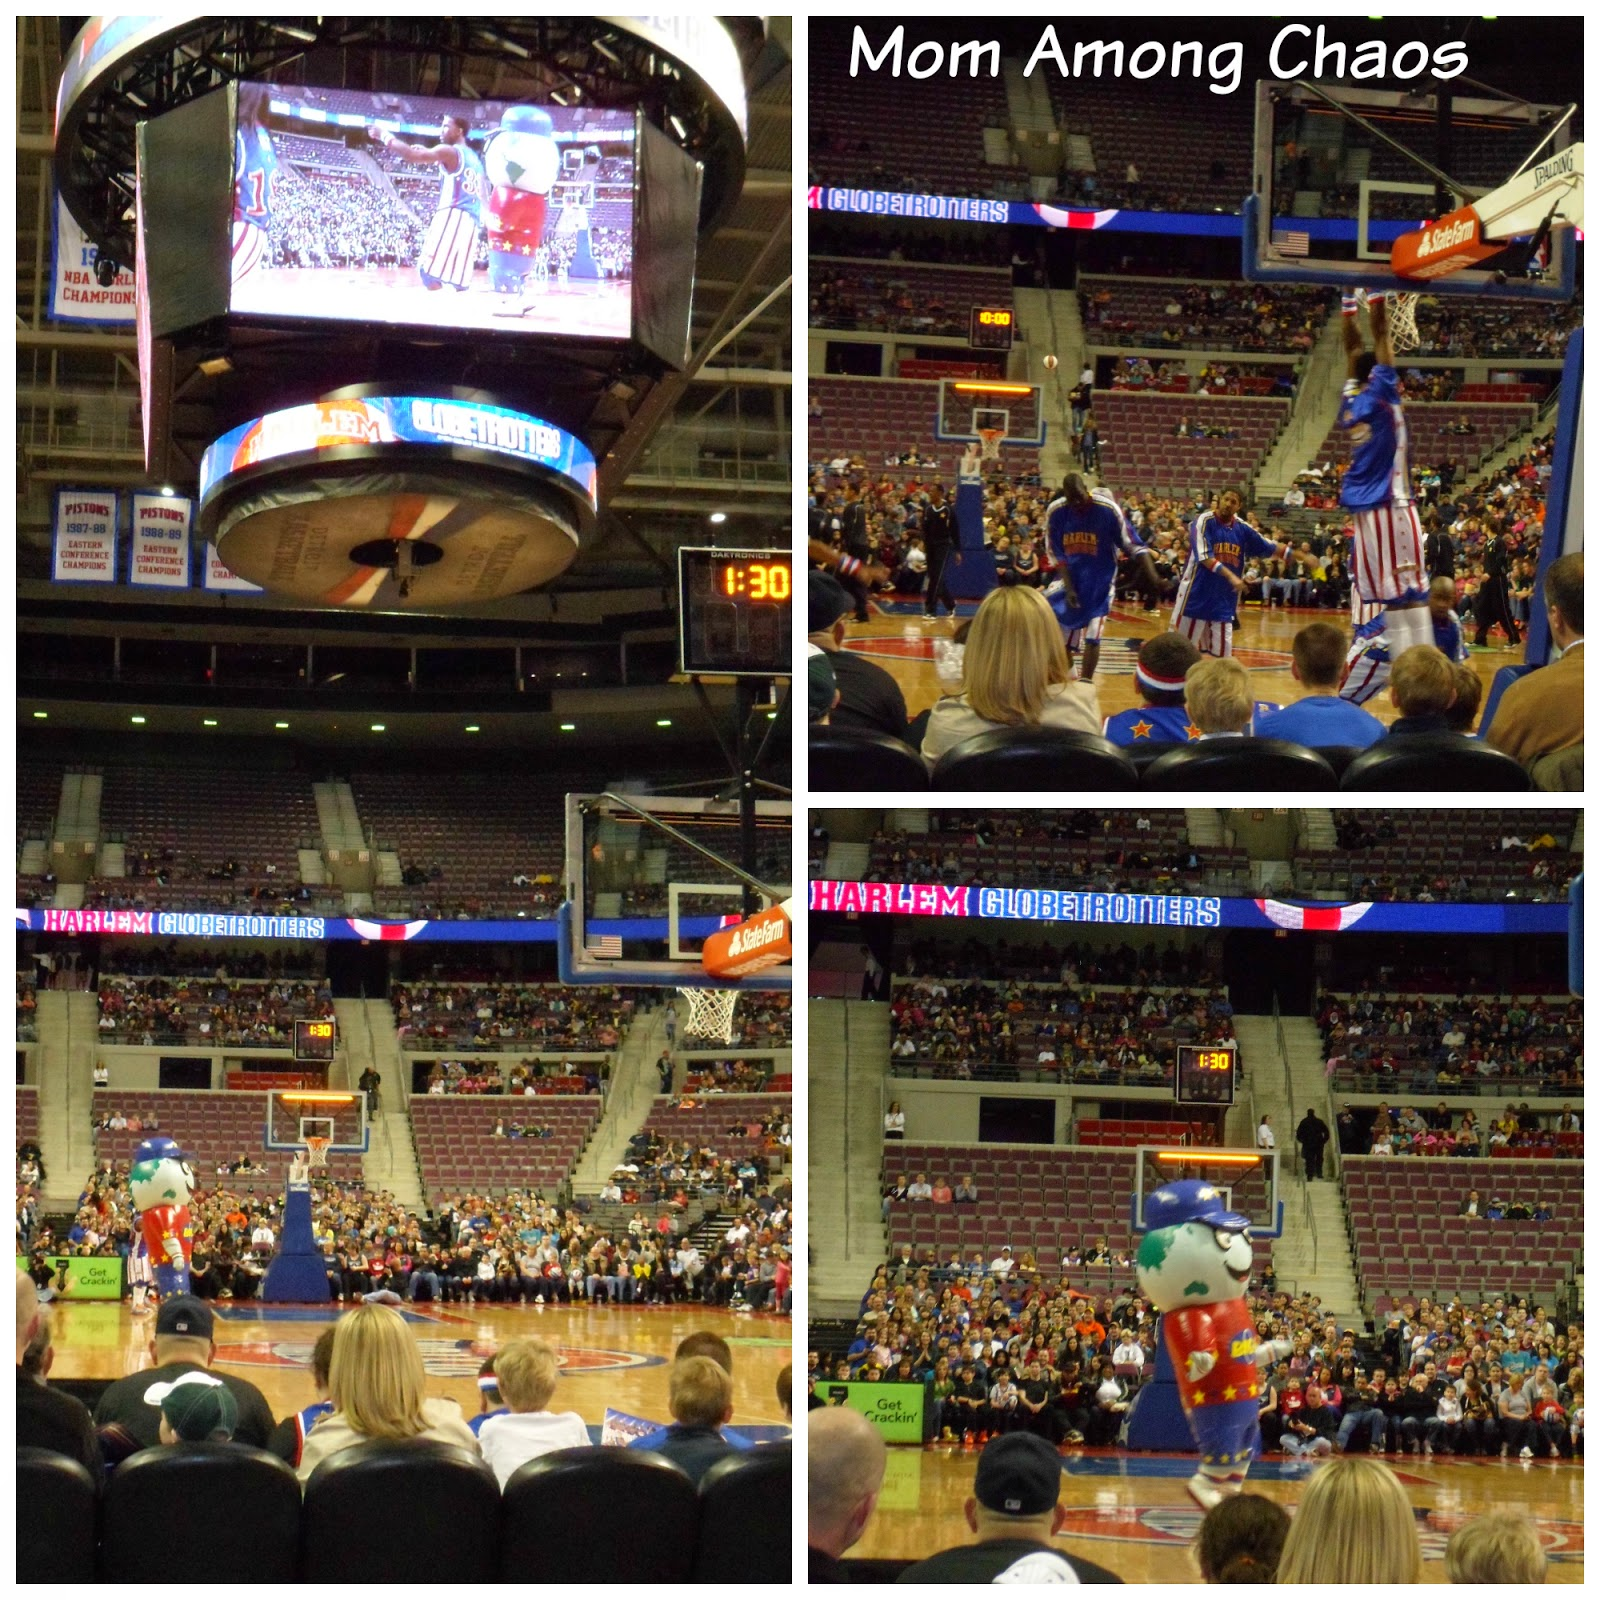 harlem globetrotters, baskeball, family, fun, event, entertainment, The Palace of Auburn Hills, Detroit, giveaway, photos,